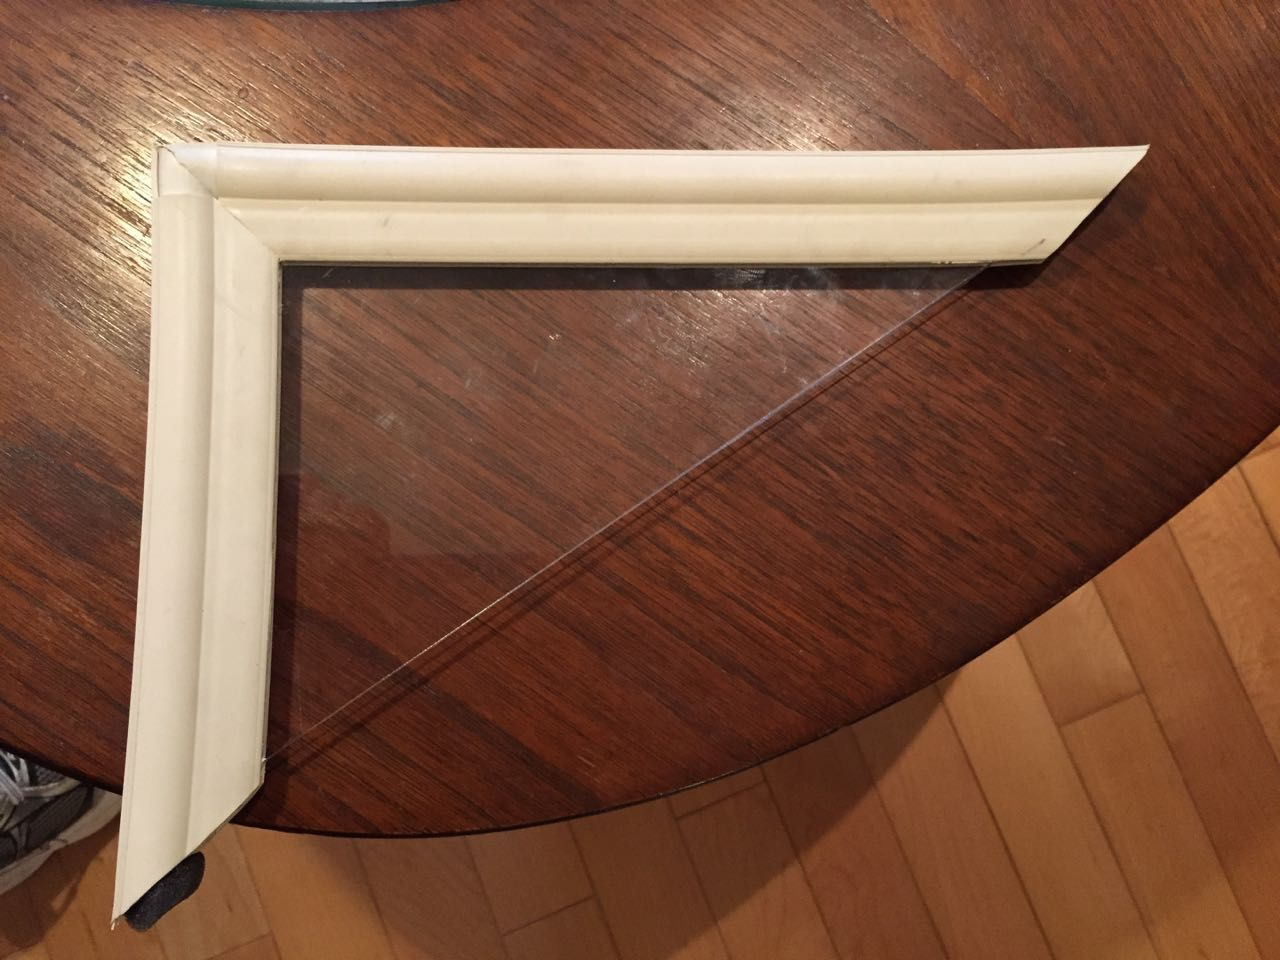 Section of window pane and frame sitting on a table